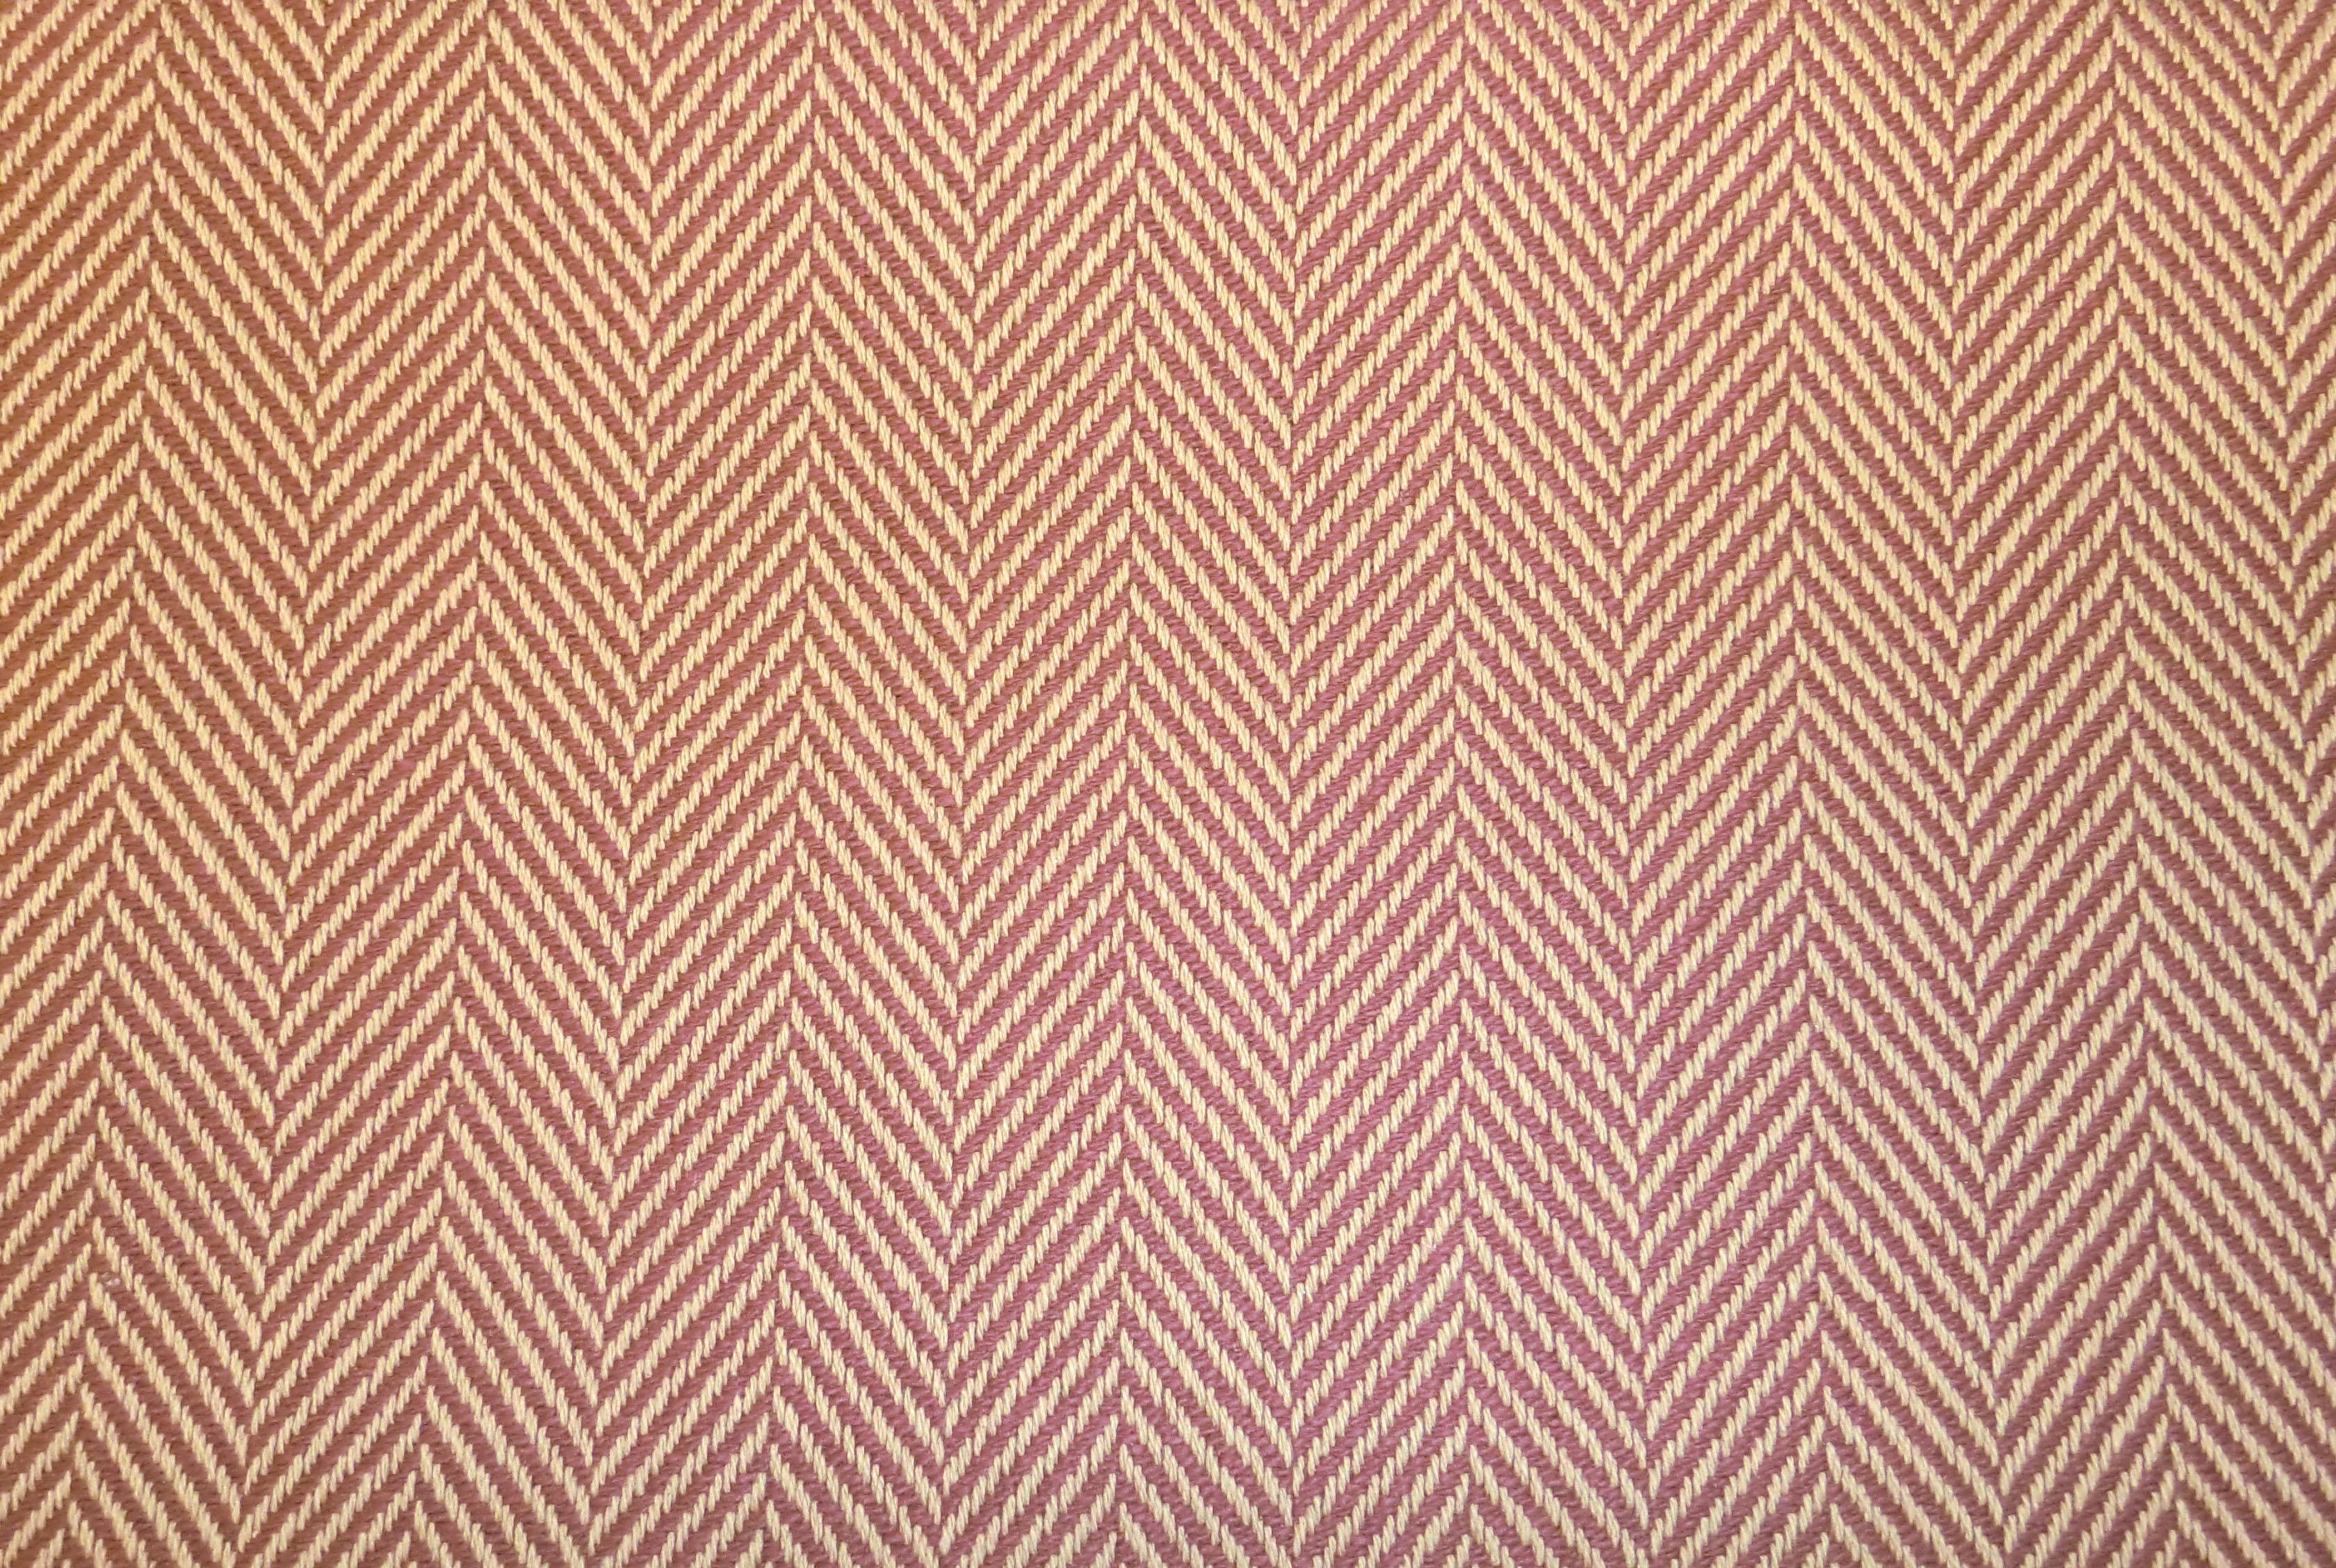 Herringbone fabric pattern the image for Textile fabrics